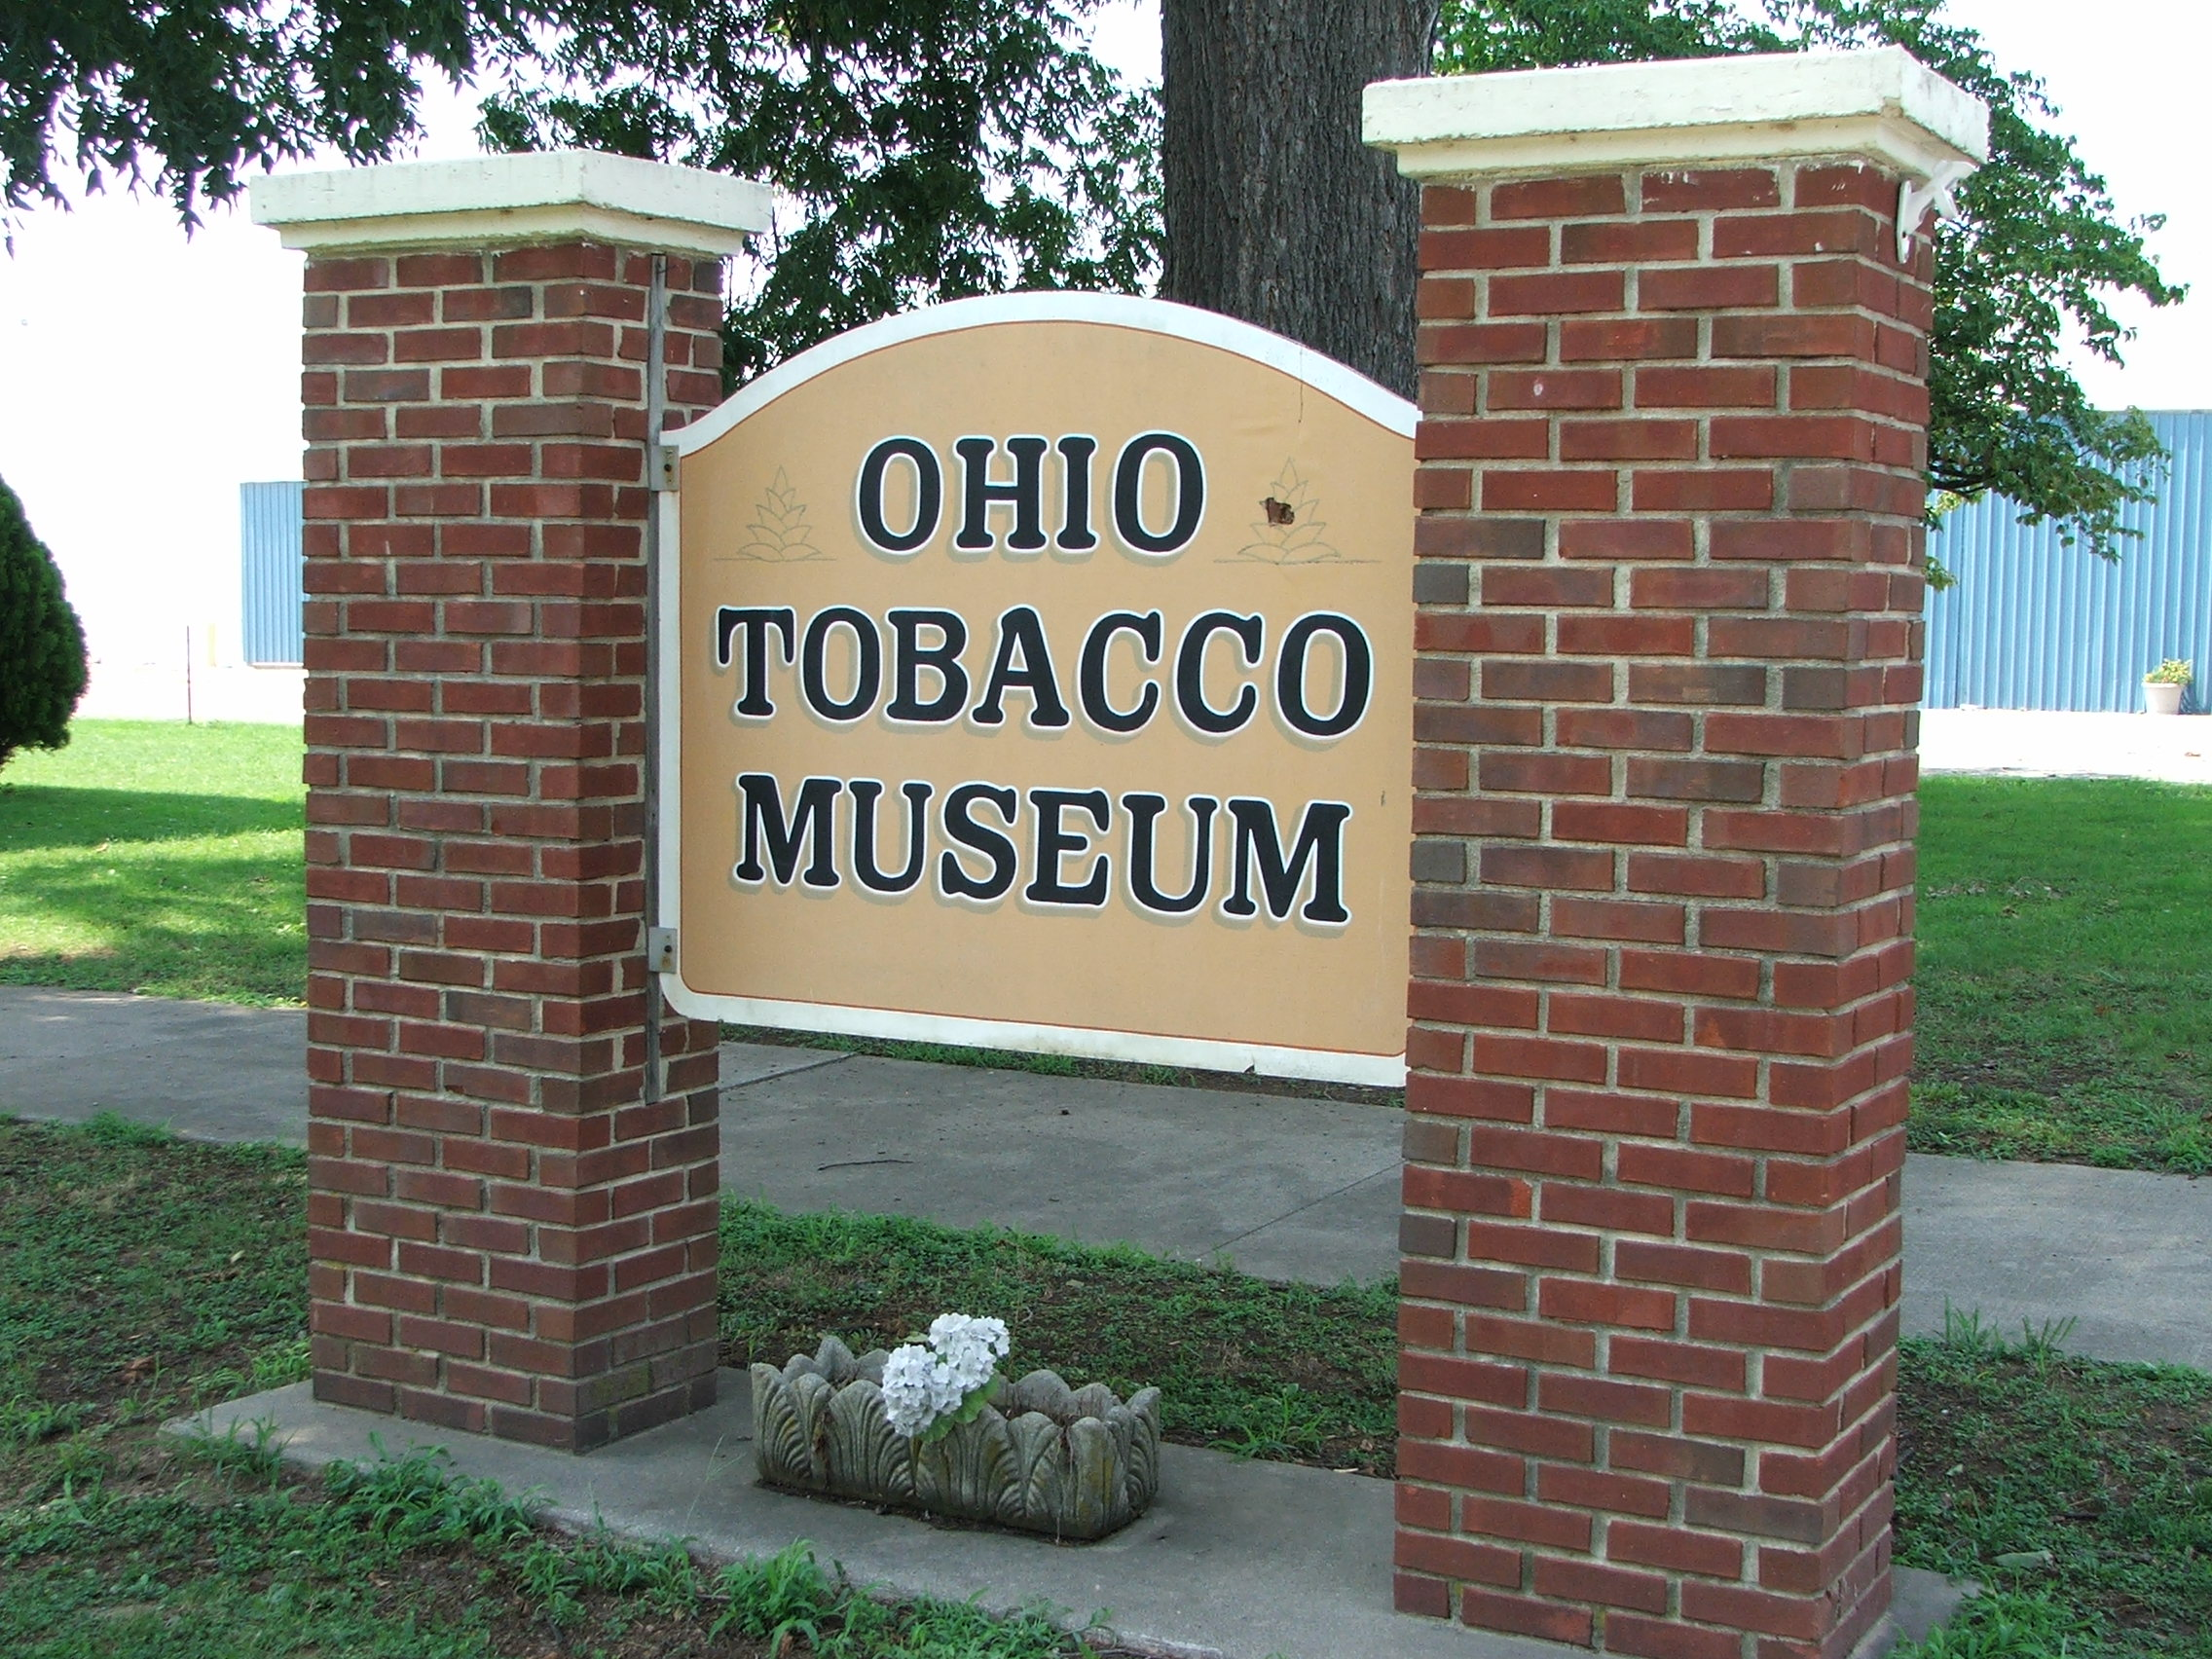 The Ohio Tobacco Museum sign can be seen clearly from the road.